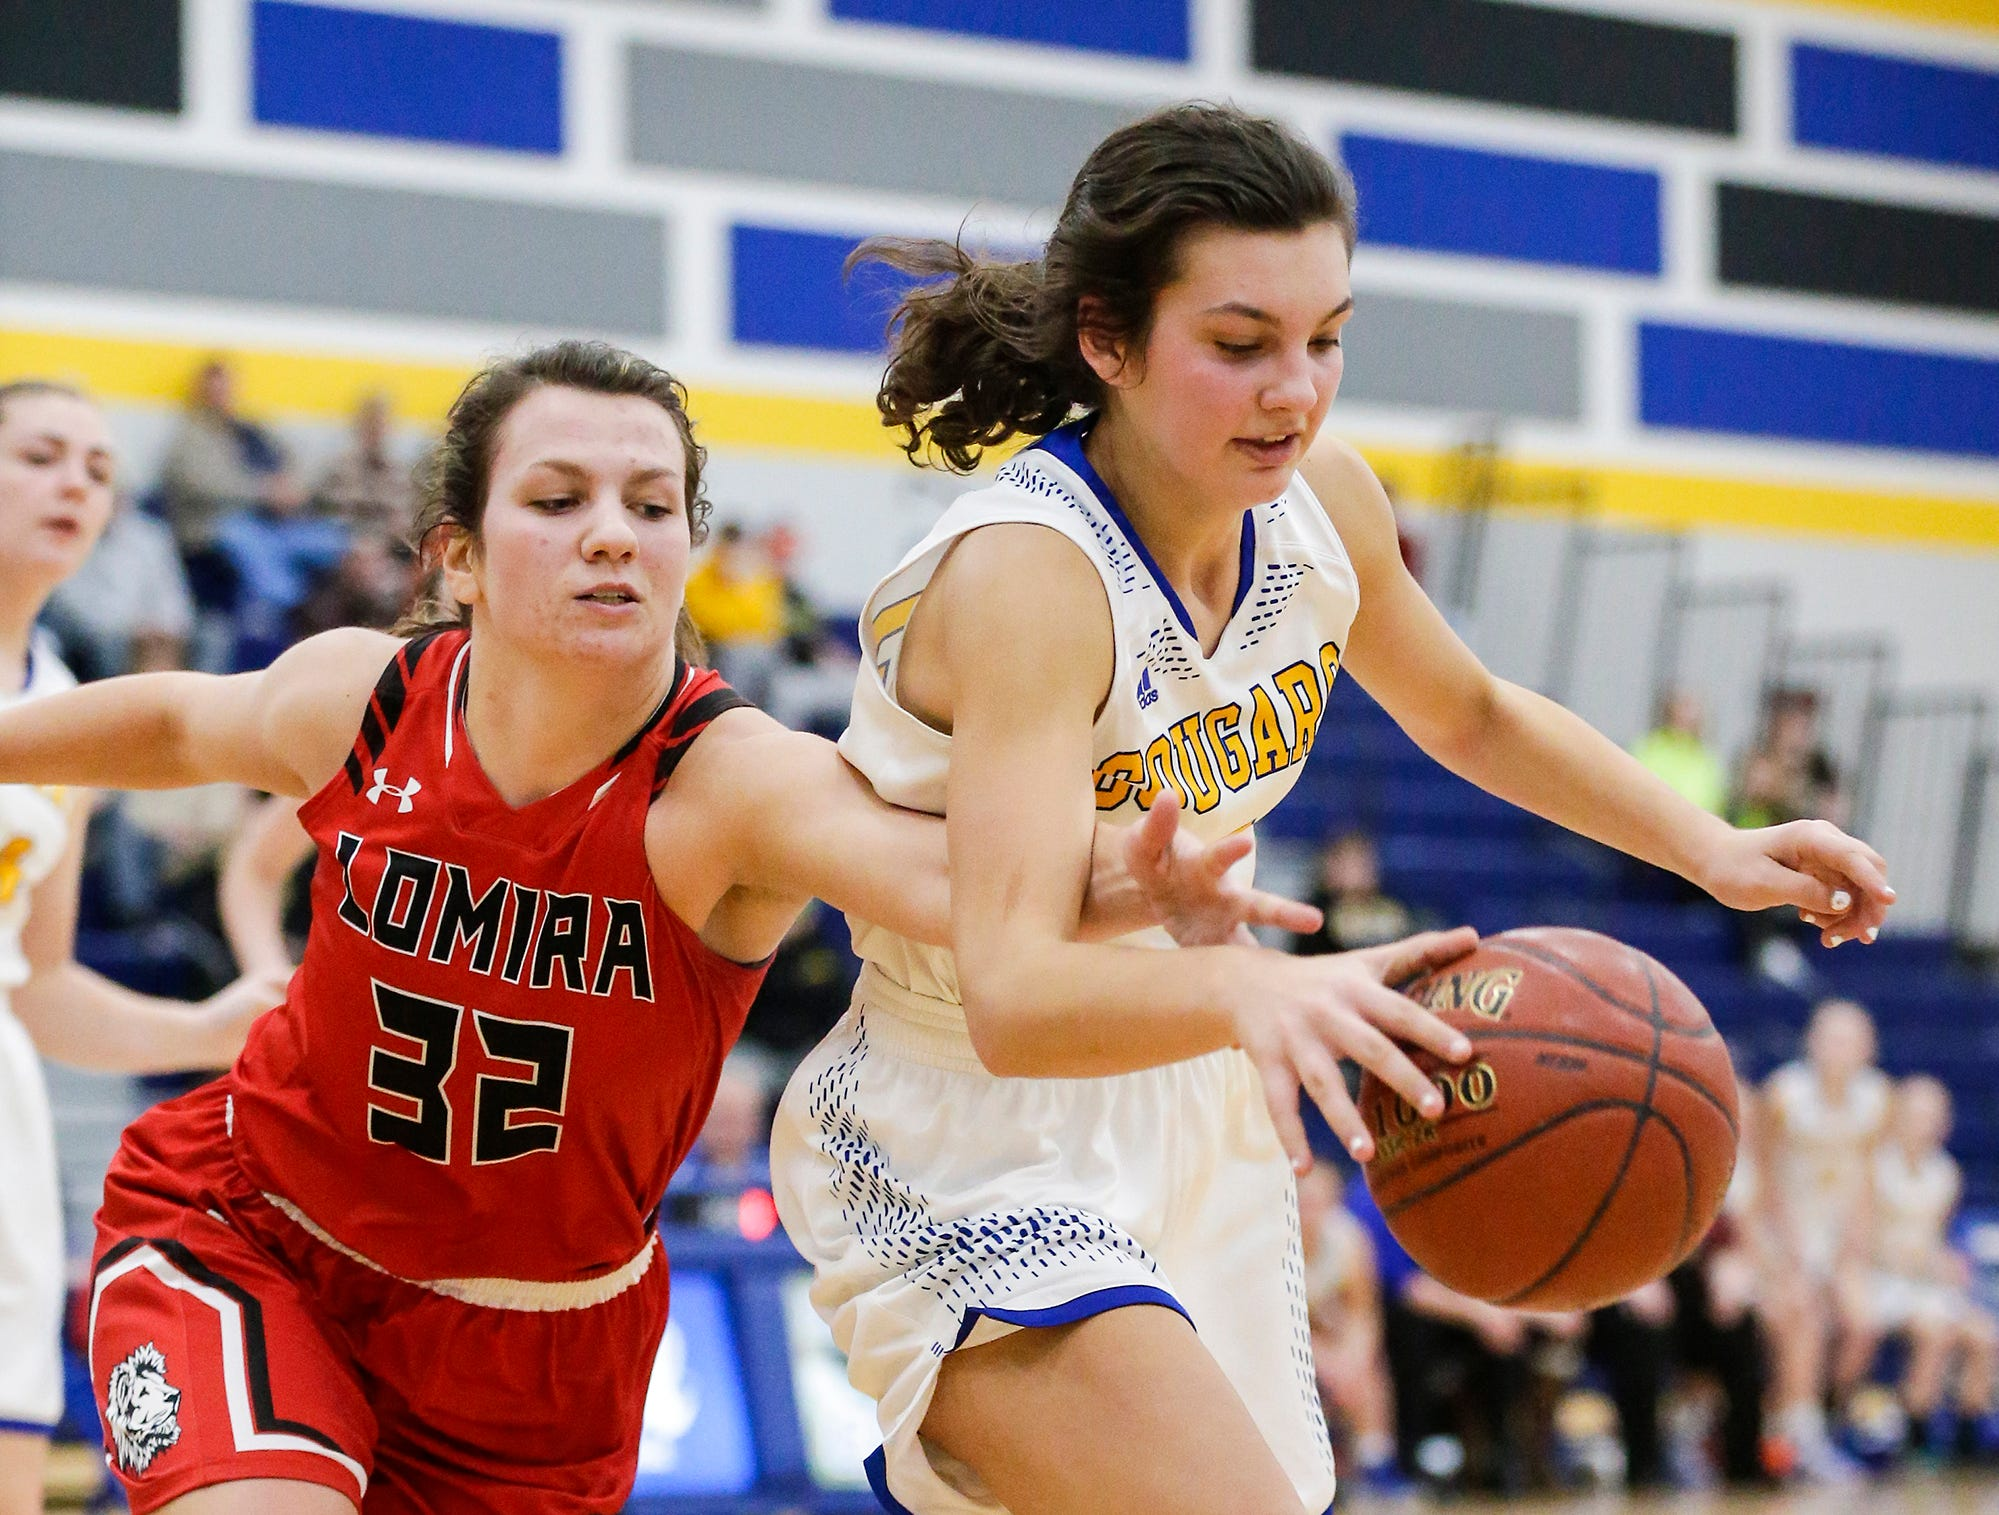 Lomira High School girls basketball's Crystal Geiger and Campbellsport High School's Madilyn Danza scramble for a rebound during their game Friday, December 28, 2018 in Campbellsport. Doug Raflik/USA TODAY NETWORK-Wisconsin